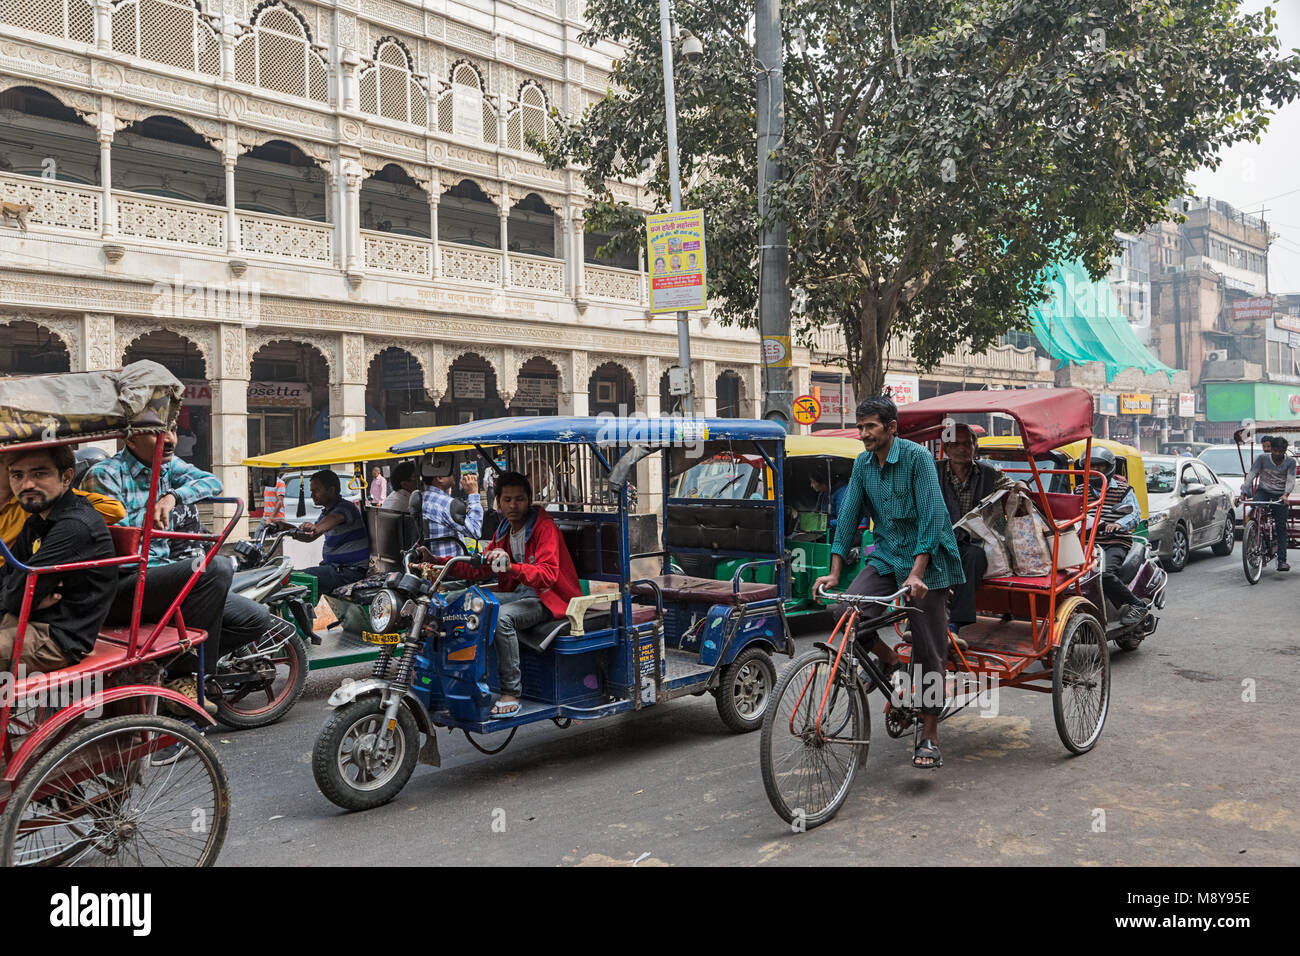 Tuk tuks in the street - Delhi - Stock Image